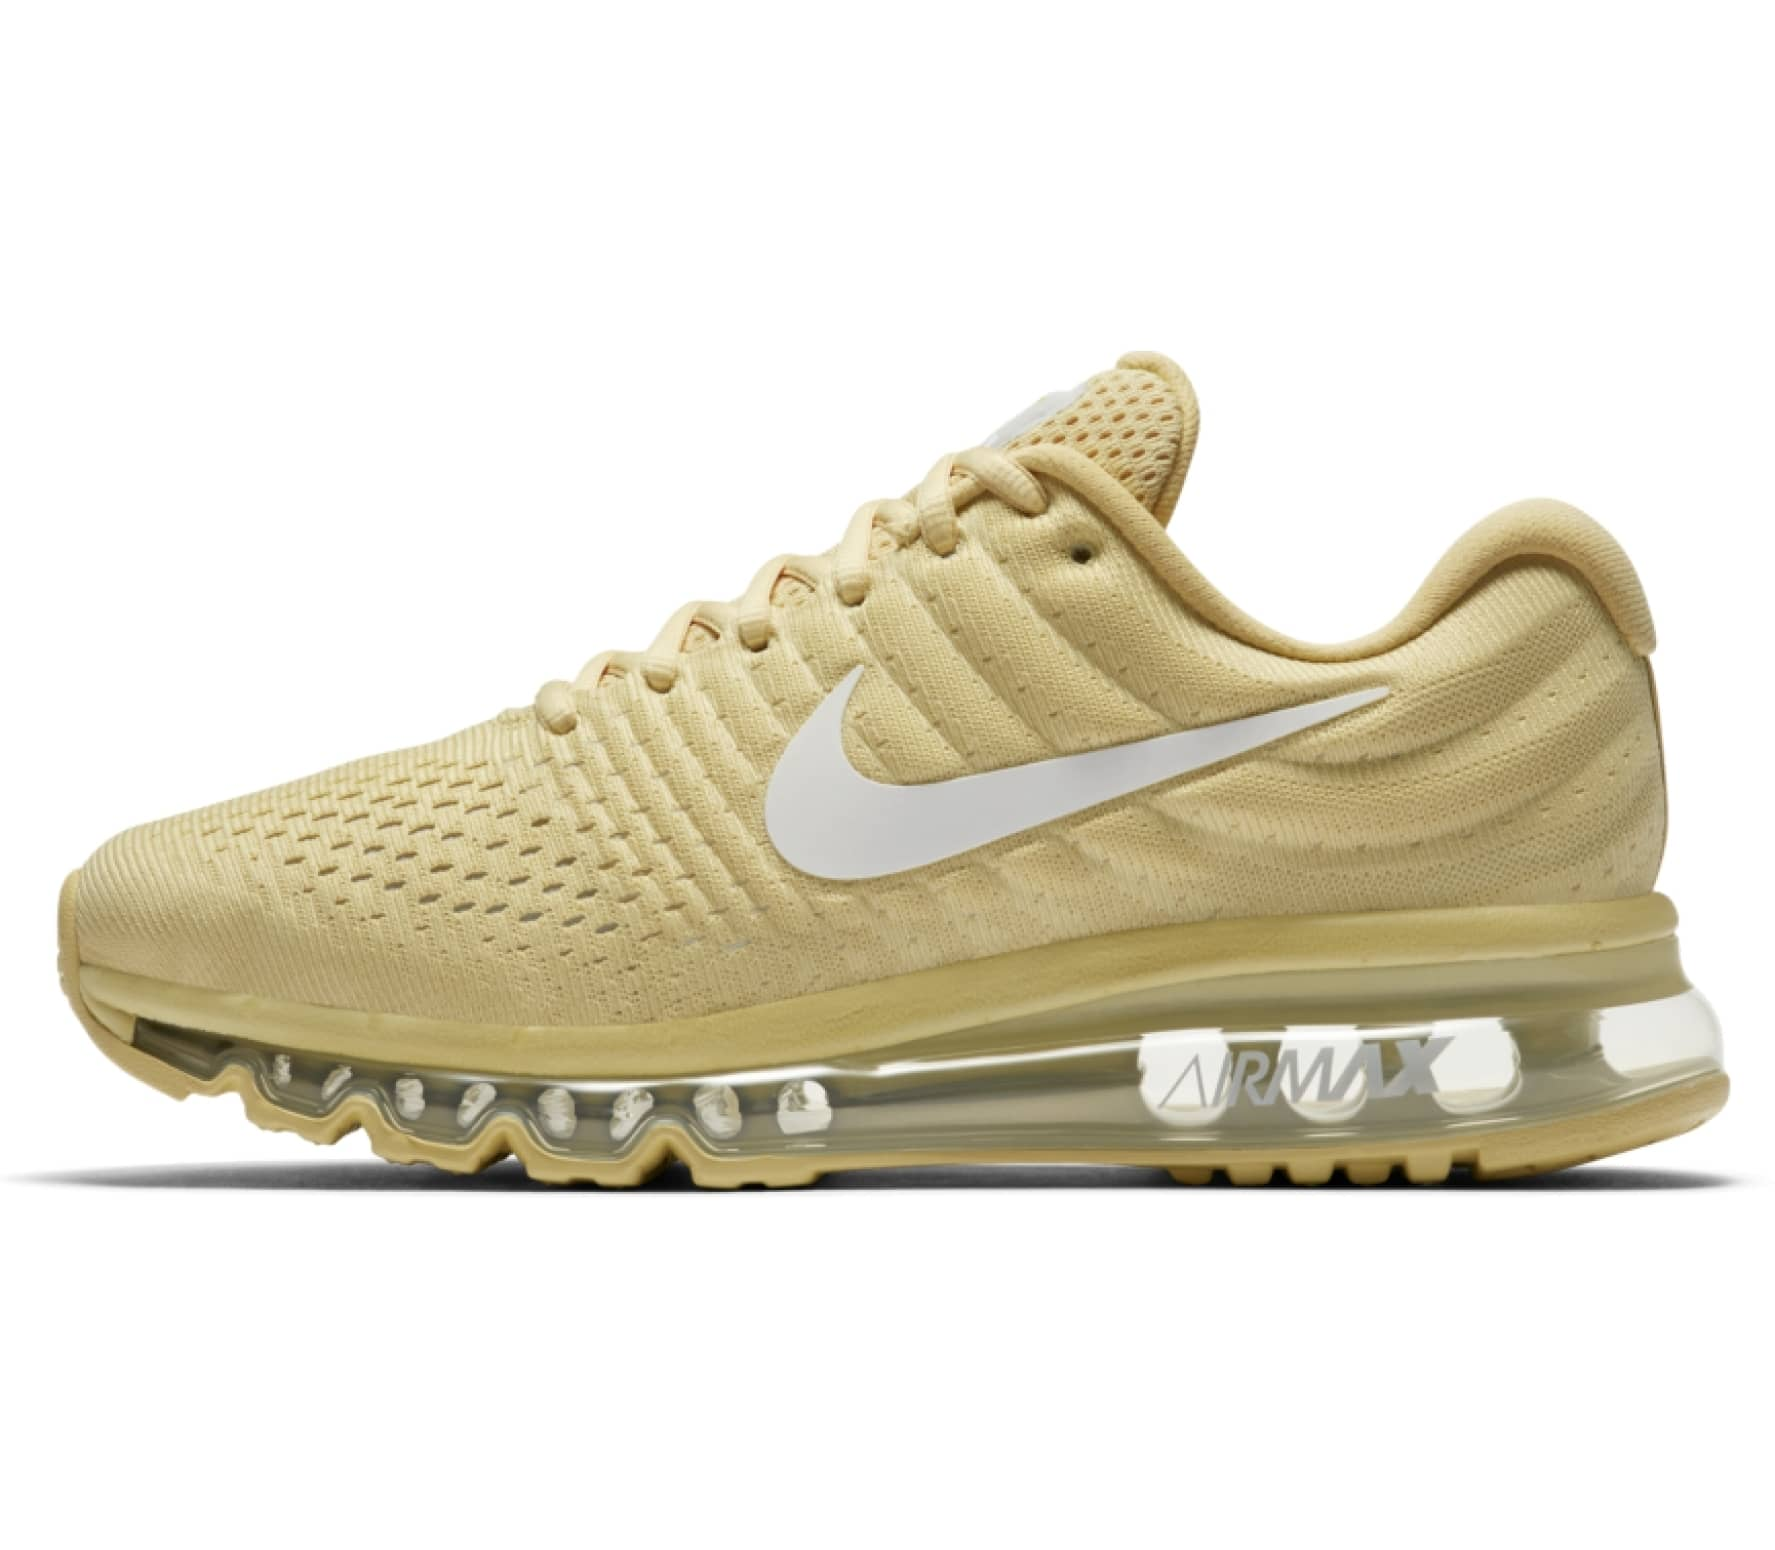 finest selection 74f0f 8b8cc Air Max 2017 women s running shoes (yellow white)